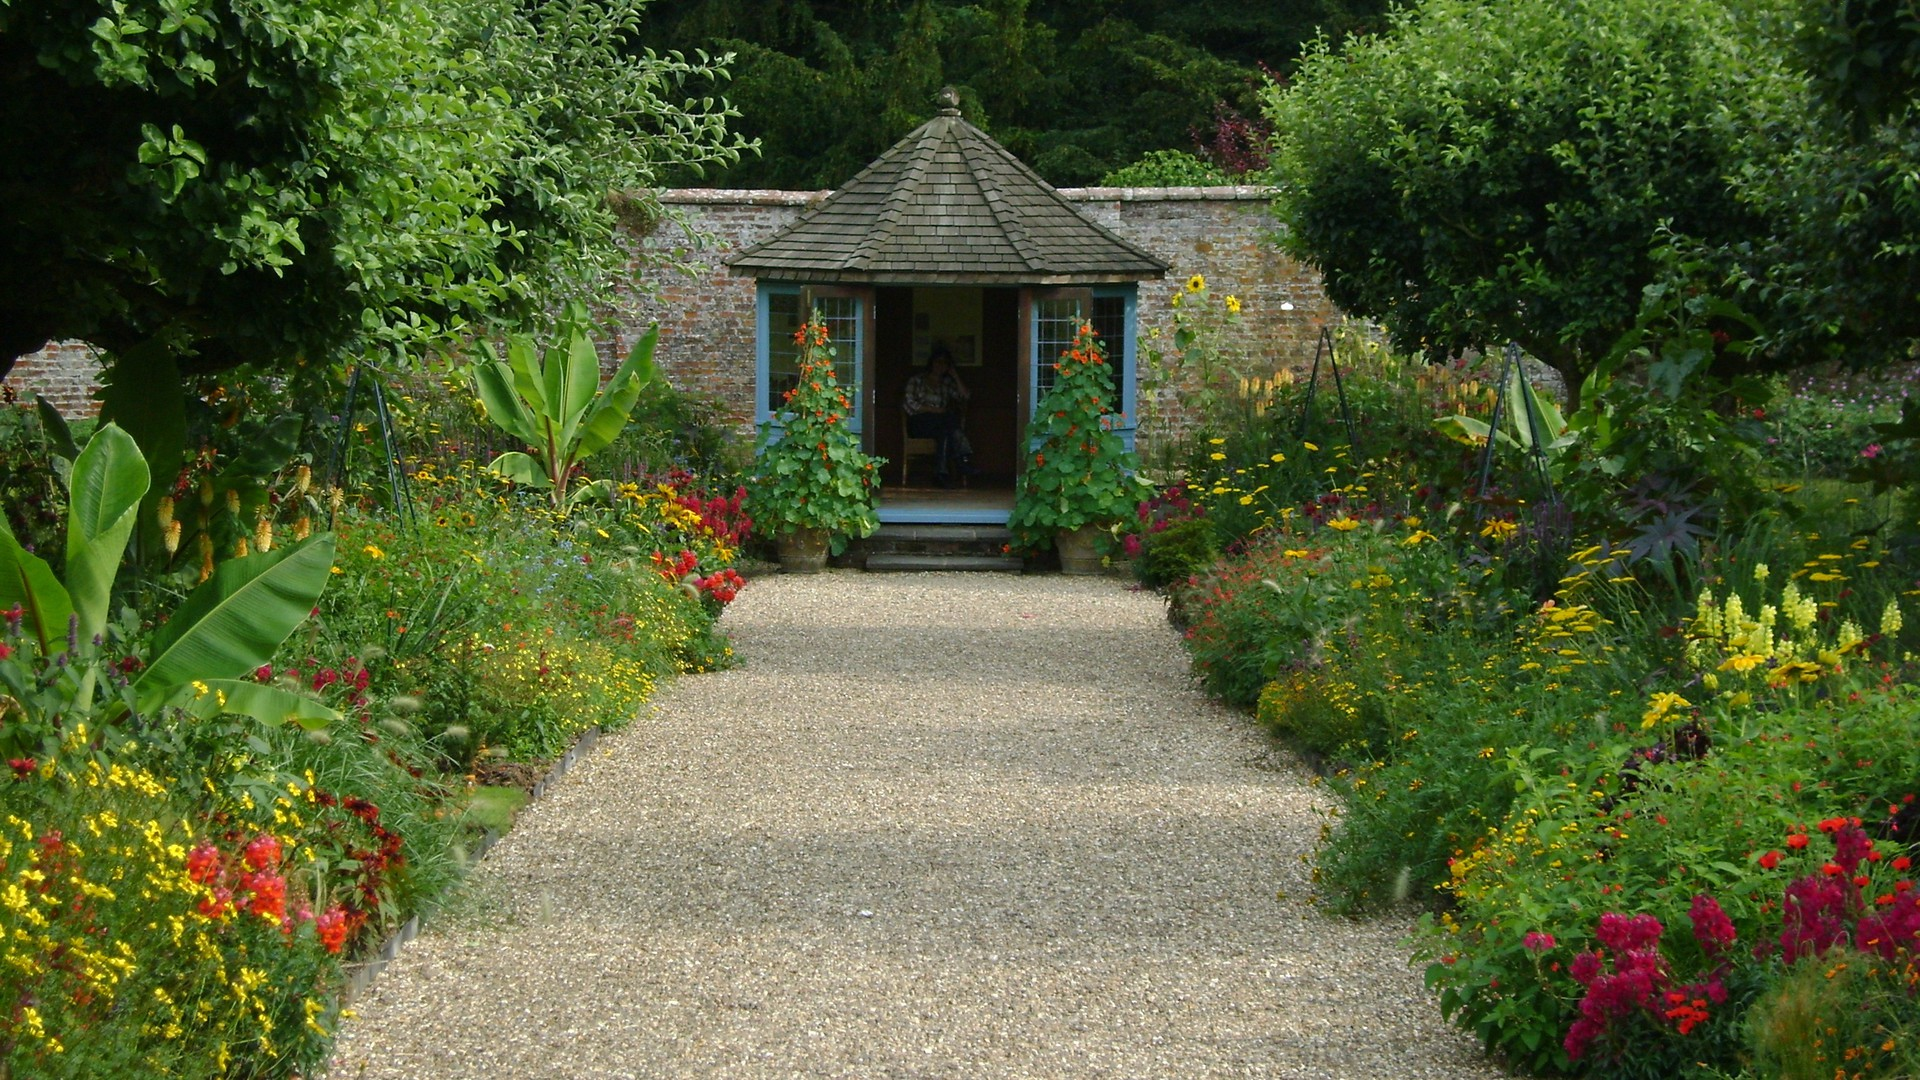 Down the garden path wallpaper 15397 for Wallpaper home and garden